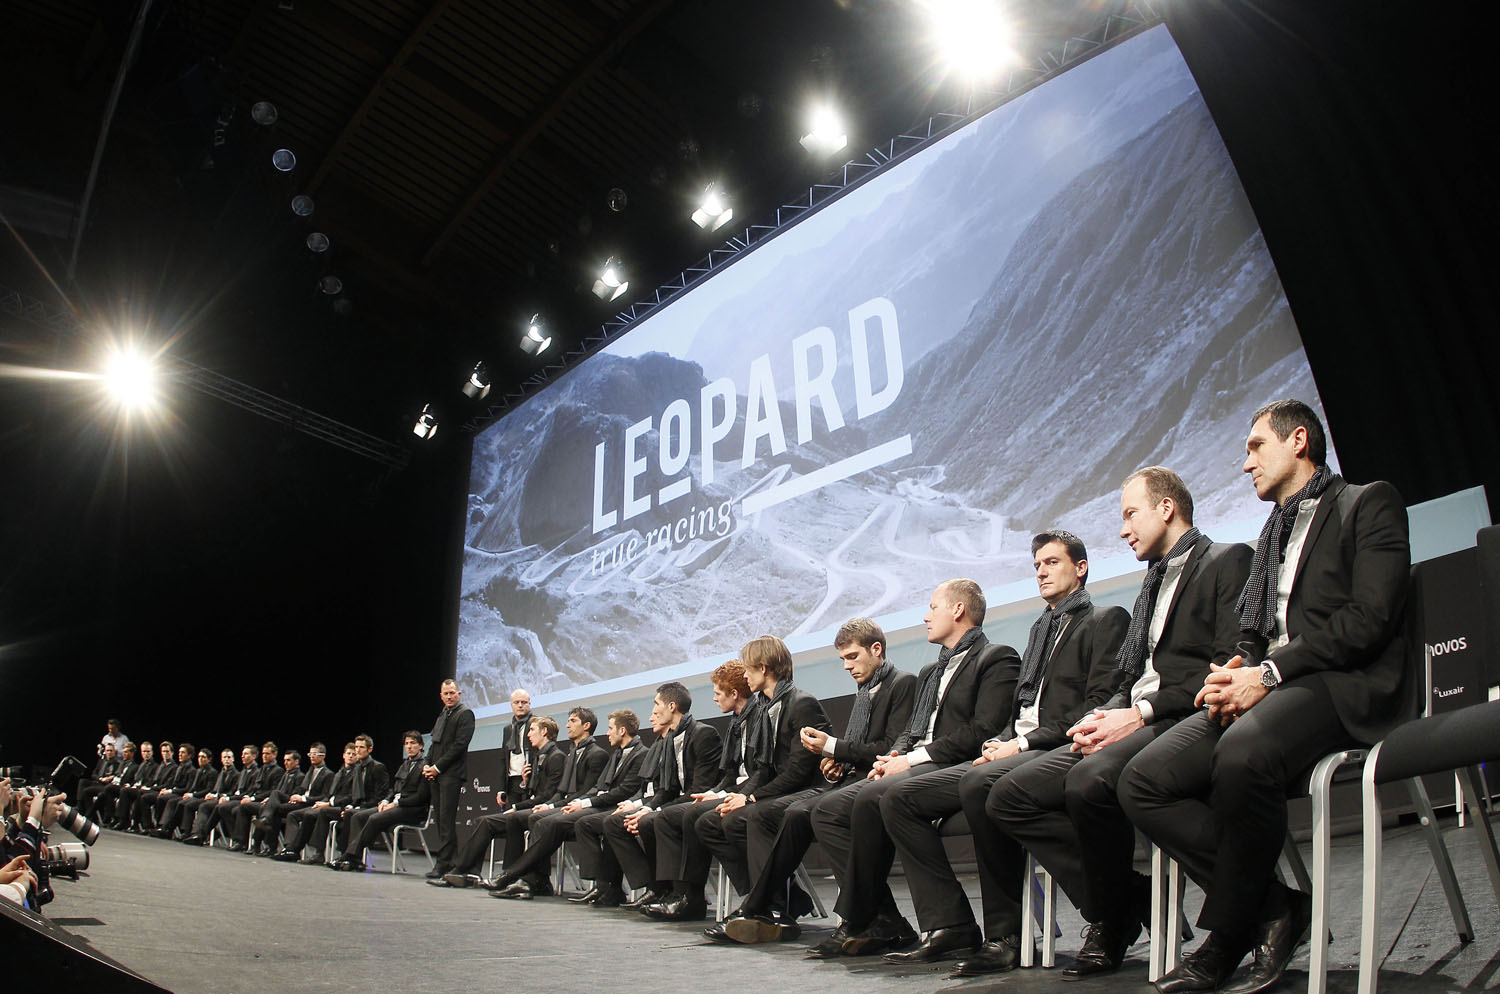 Team Leopard-Trek team presentation, January 2011